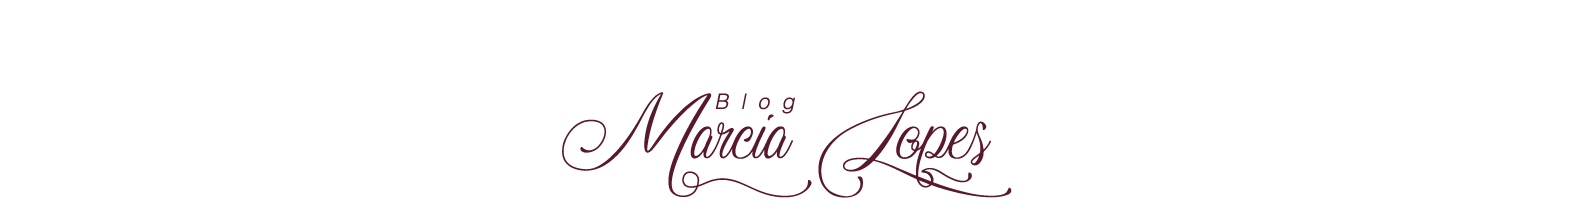 Blog Marcia Lopes